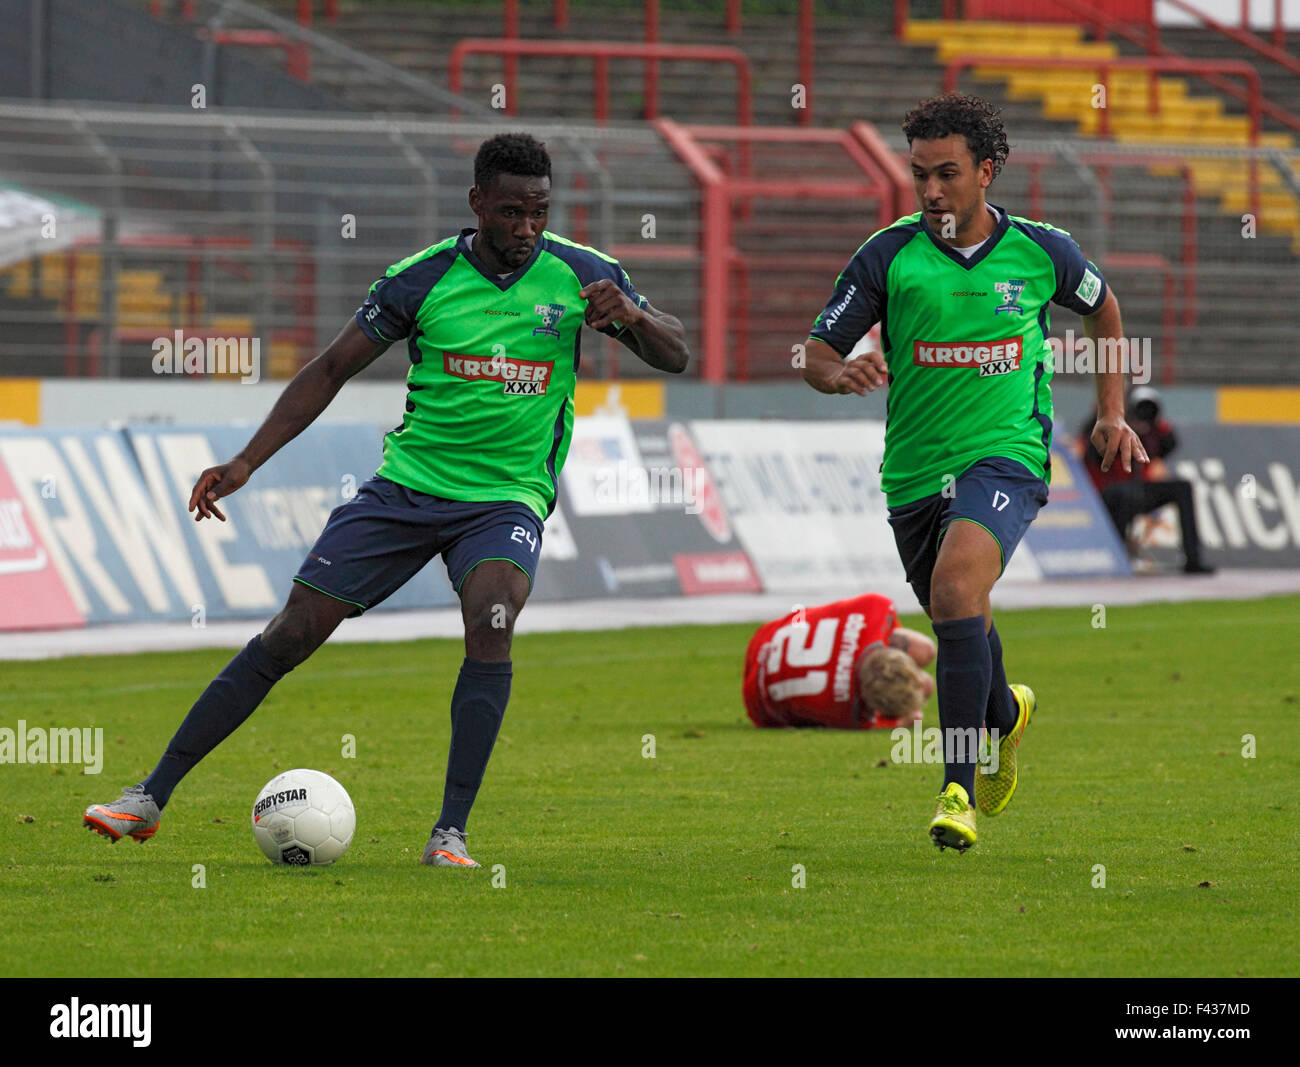 sports, football, Regional League West, 2015/2016, Rot Weiss Oberhausen versus FC Kray 1:3, Stadium Niederrhein - Stock Image